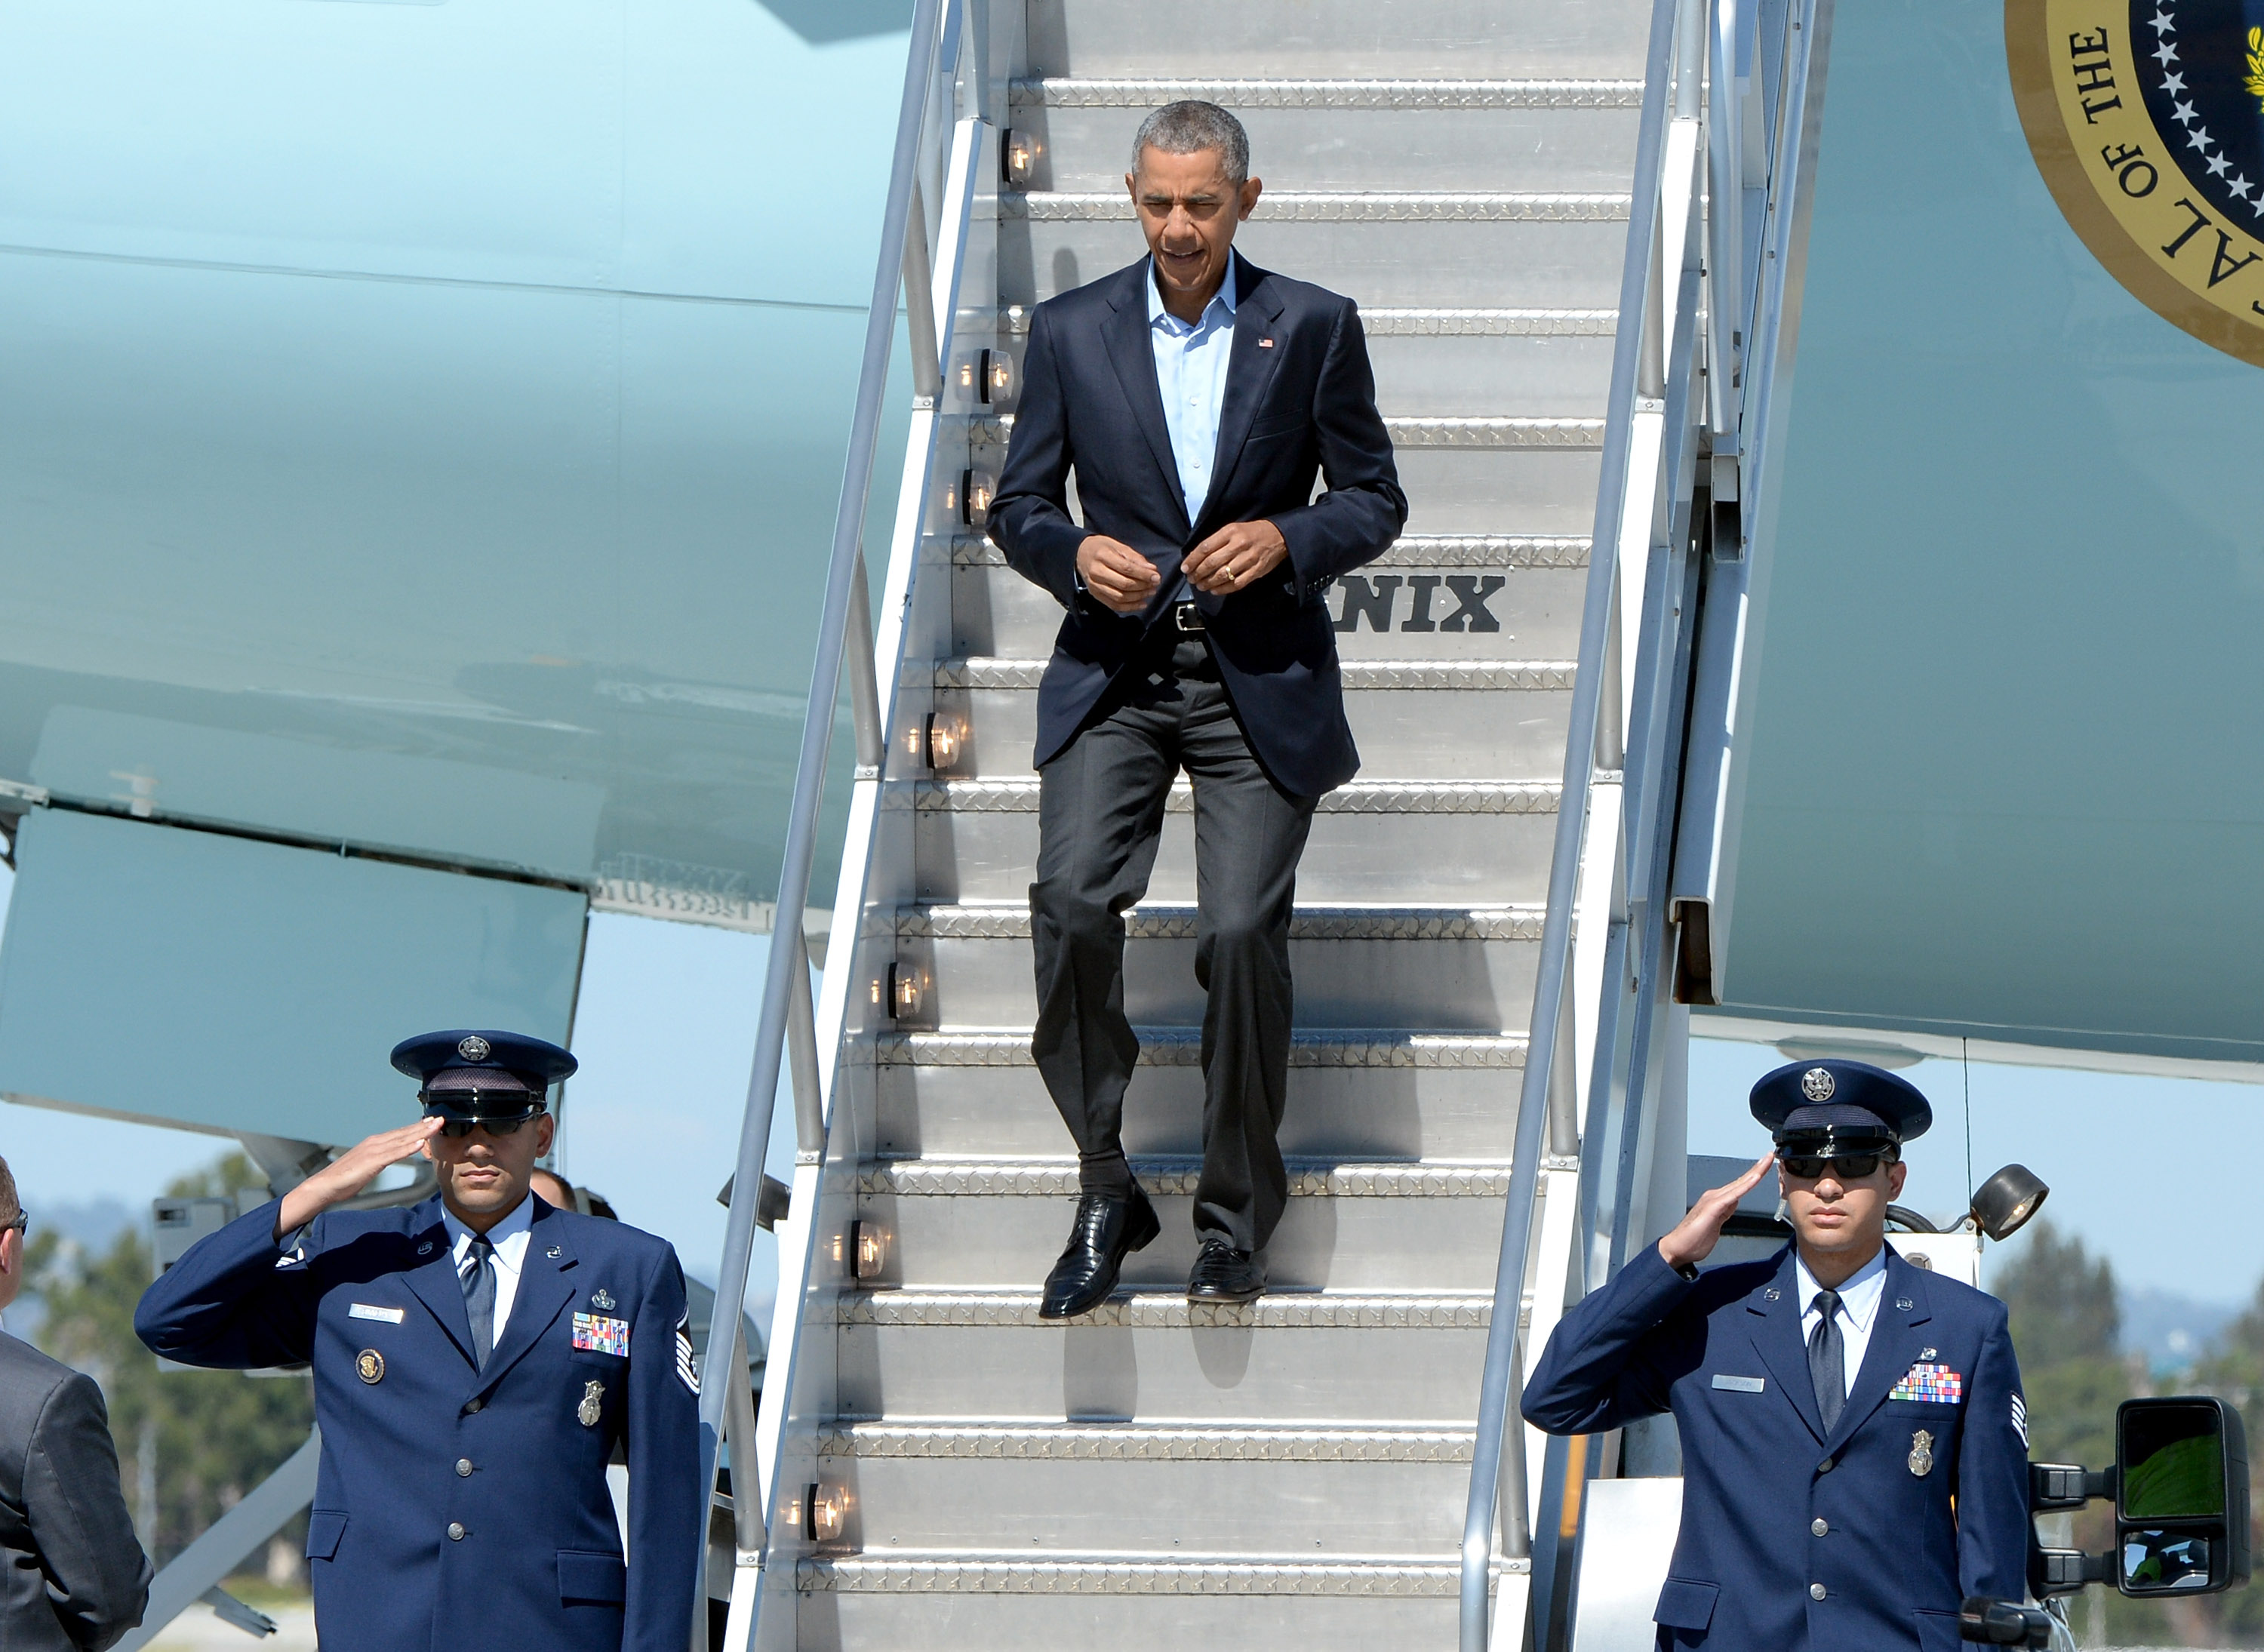 President Barack Obama arrives in Air Force One at LAX Airport on October 10, 2015 in Los Angeles, California.